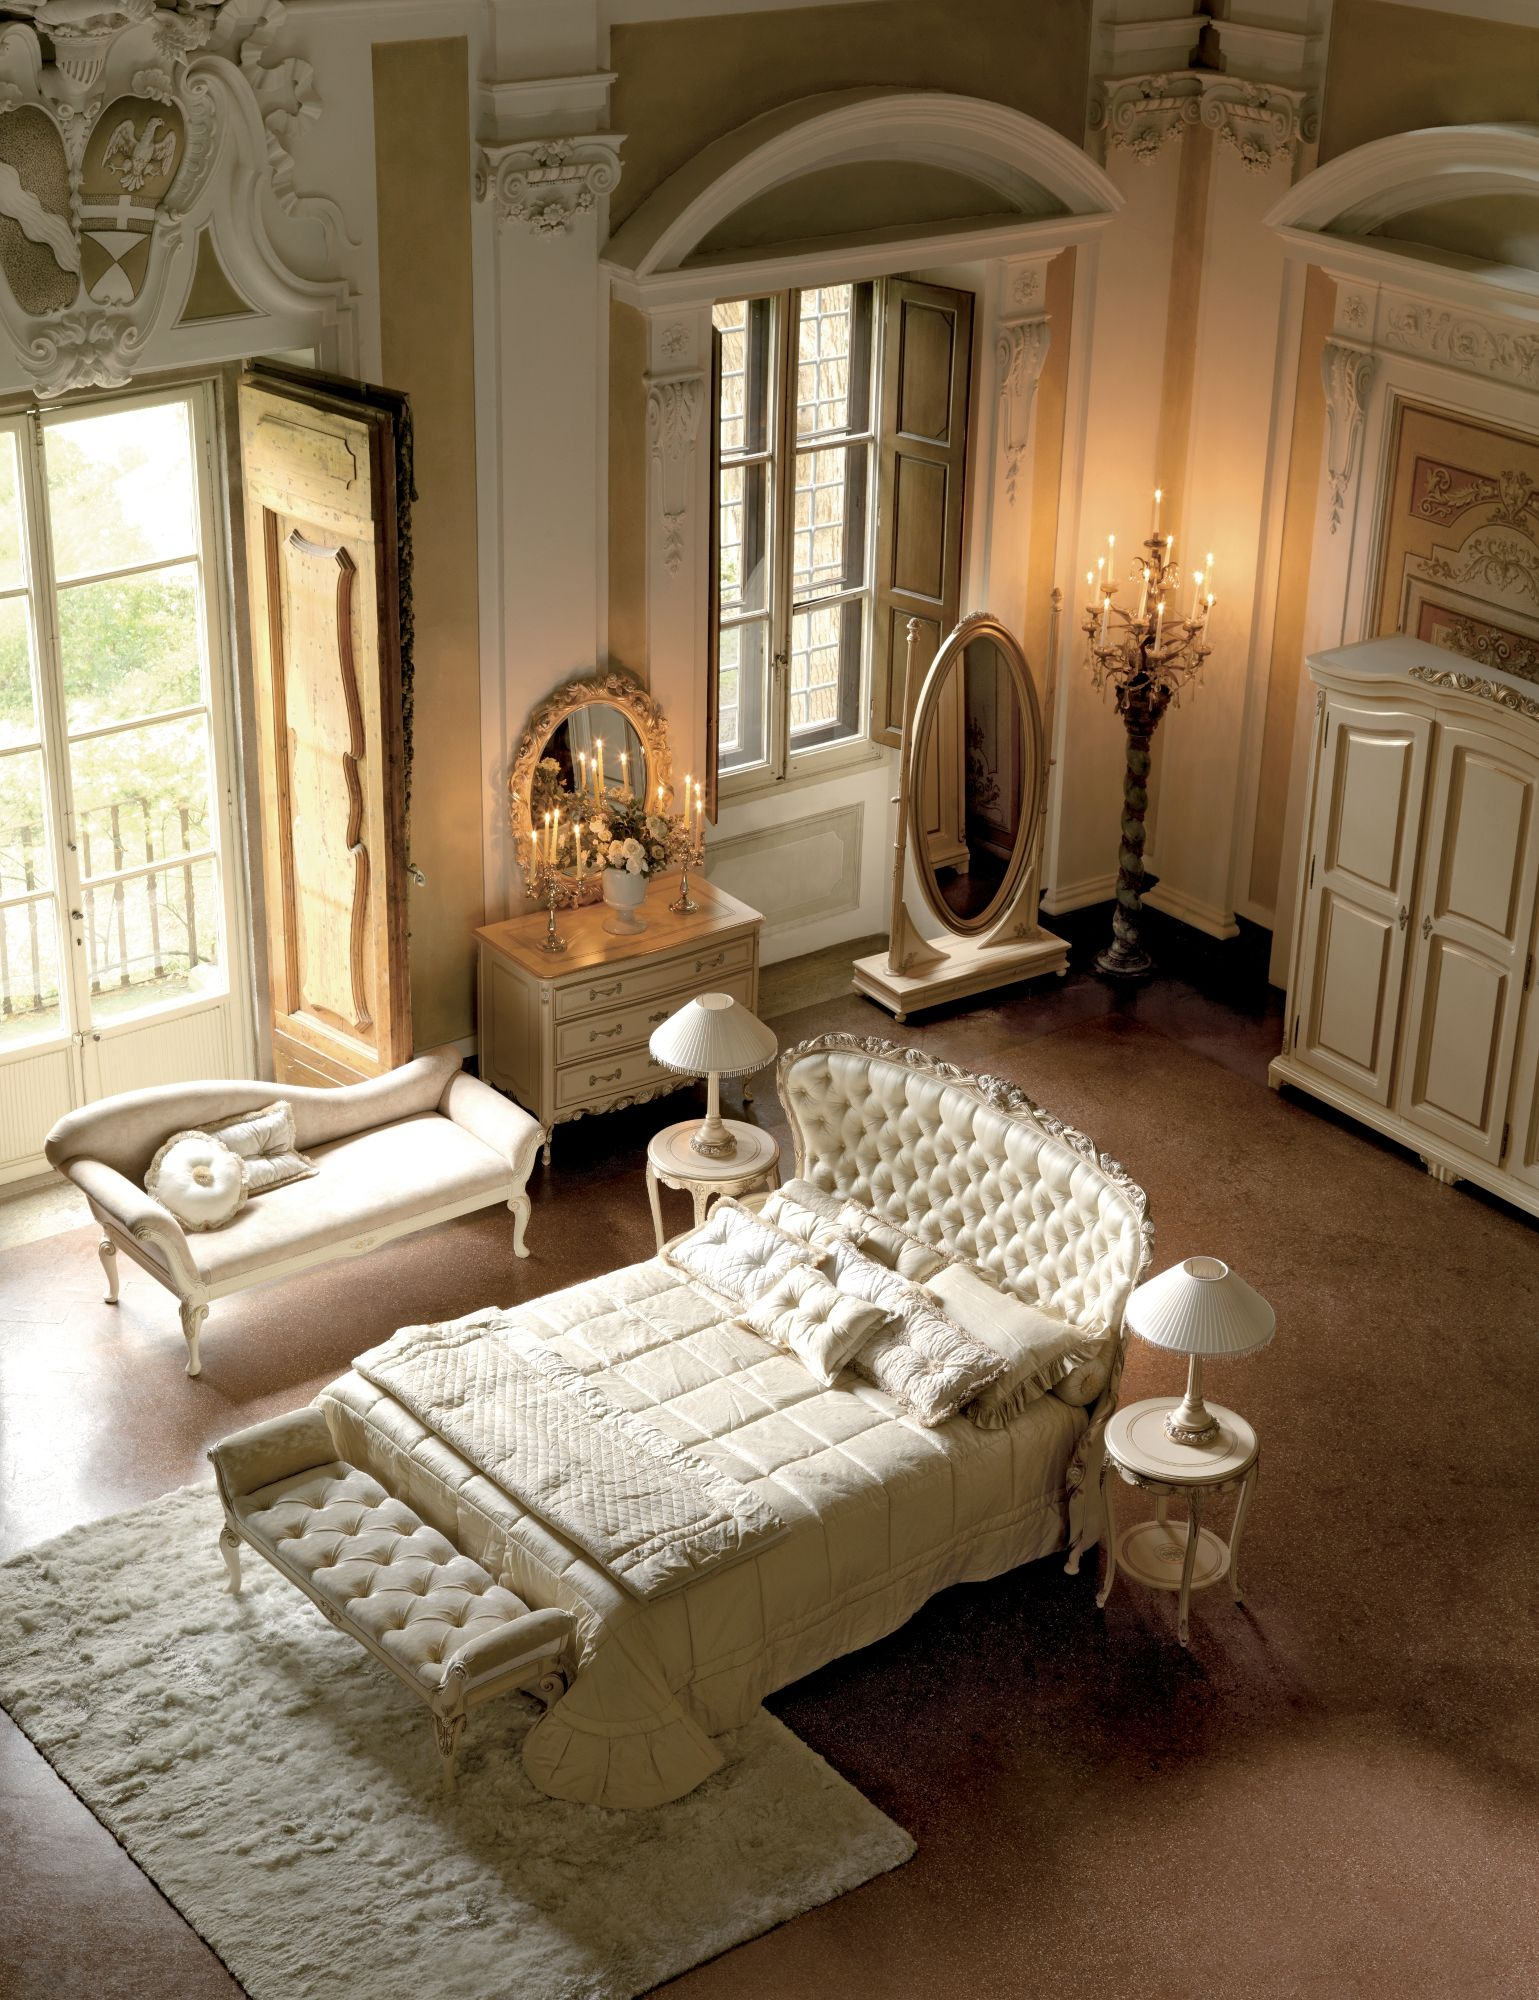 Provasi Living The Classic - Italian Furniture Design, Italian Living